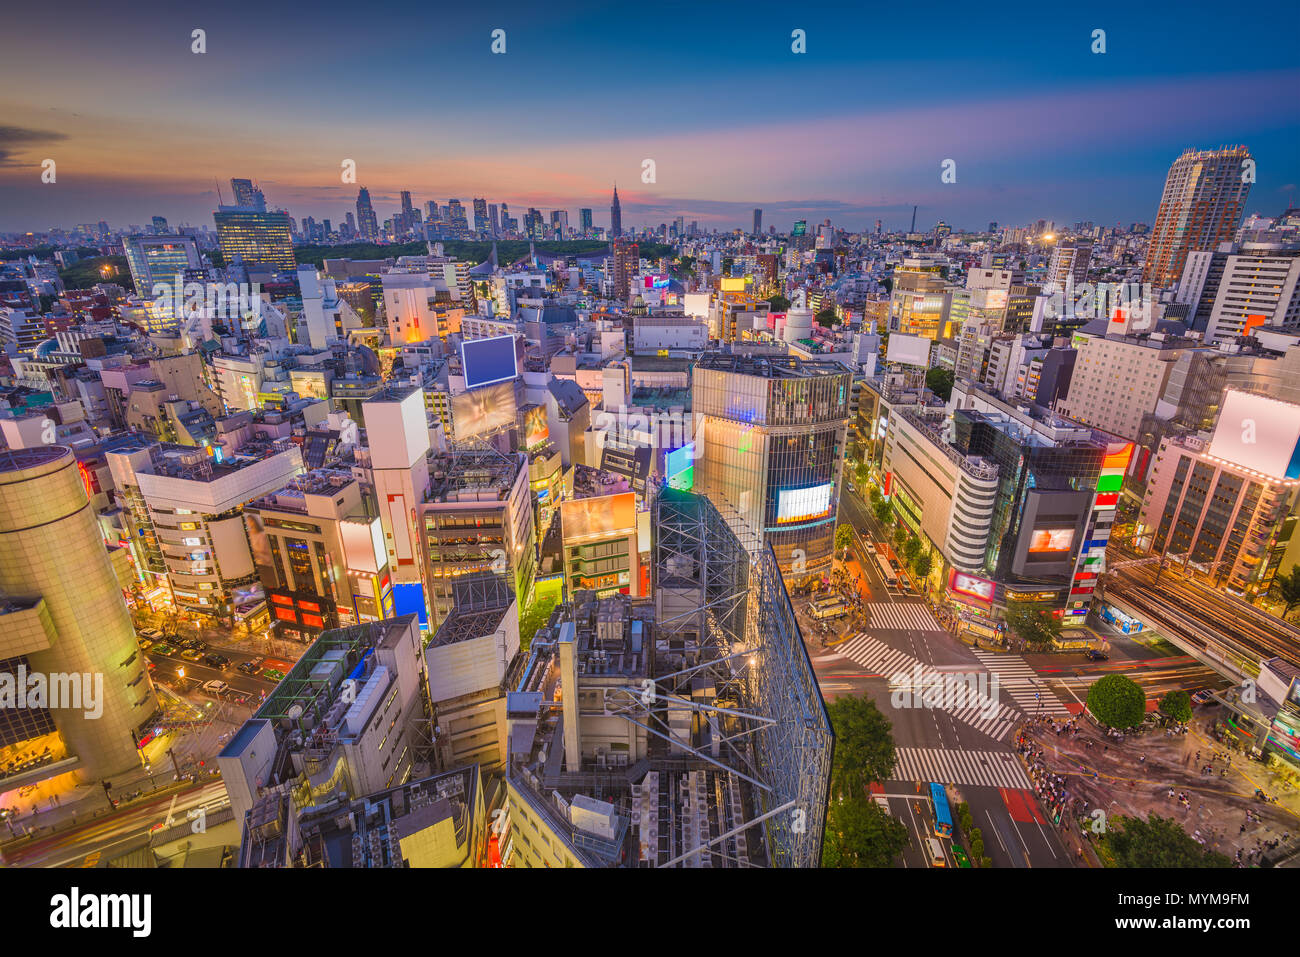 Shibuya, Tokyo, Japan city skyline over the famous scramble crosswalk at dusk. Stock Photo